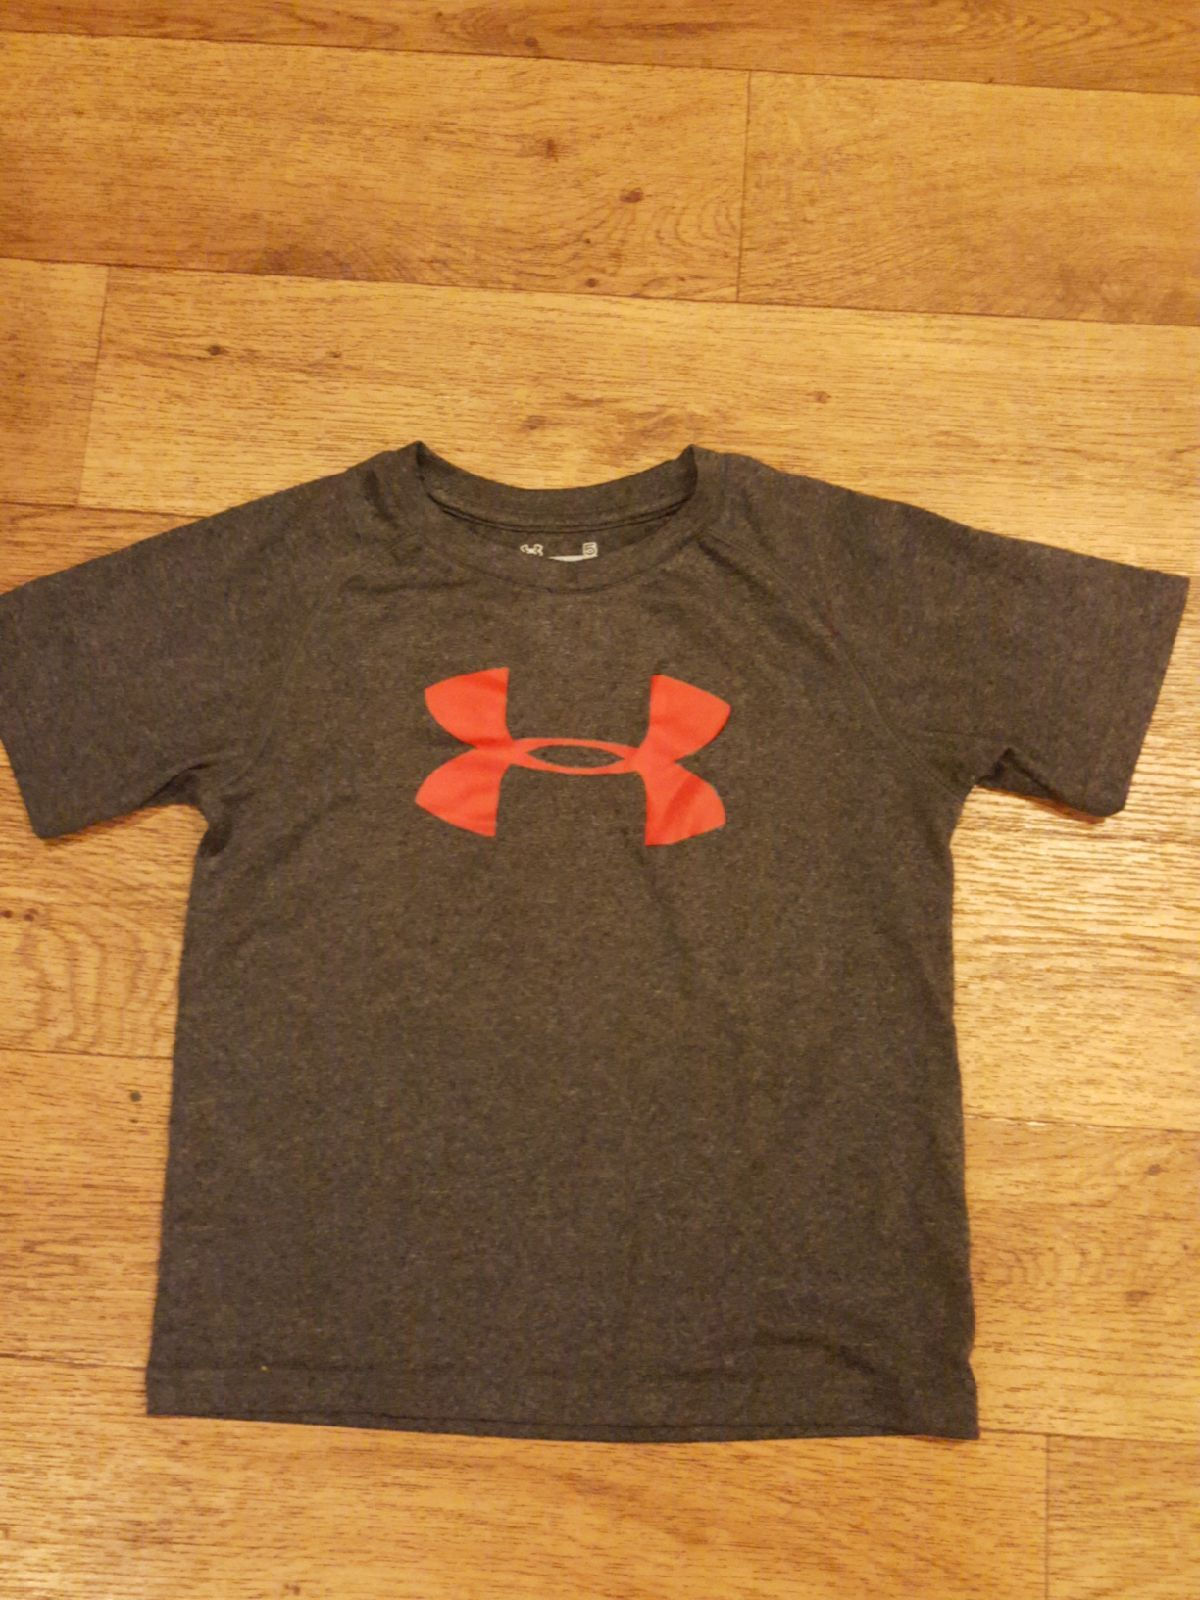 5t under armour